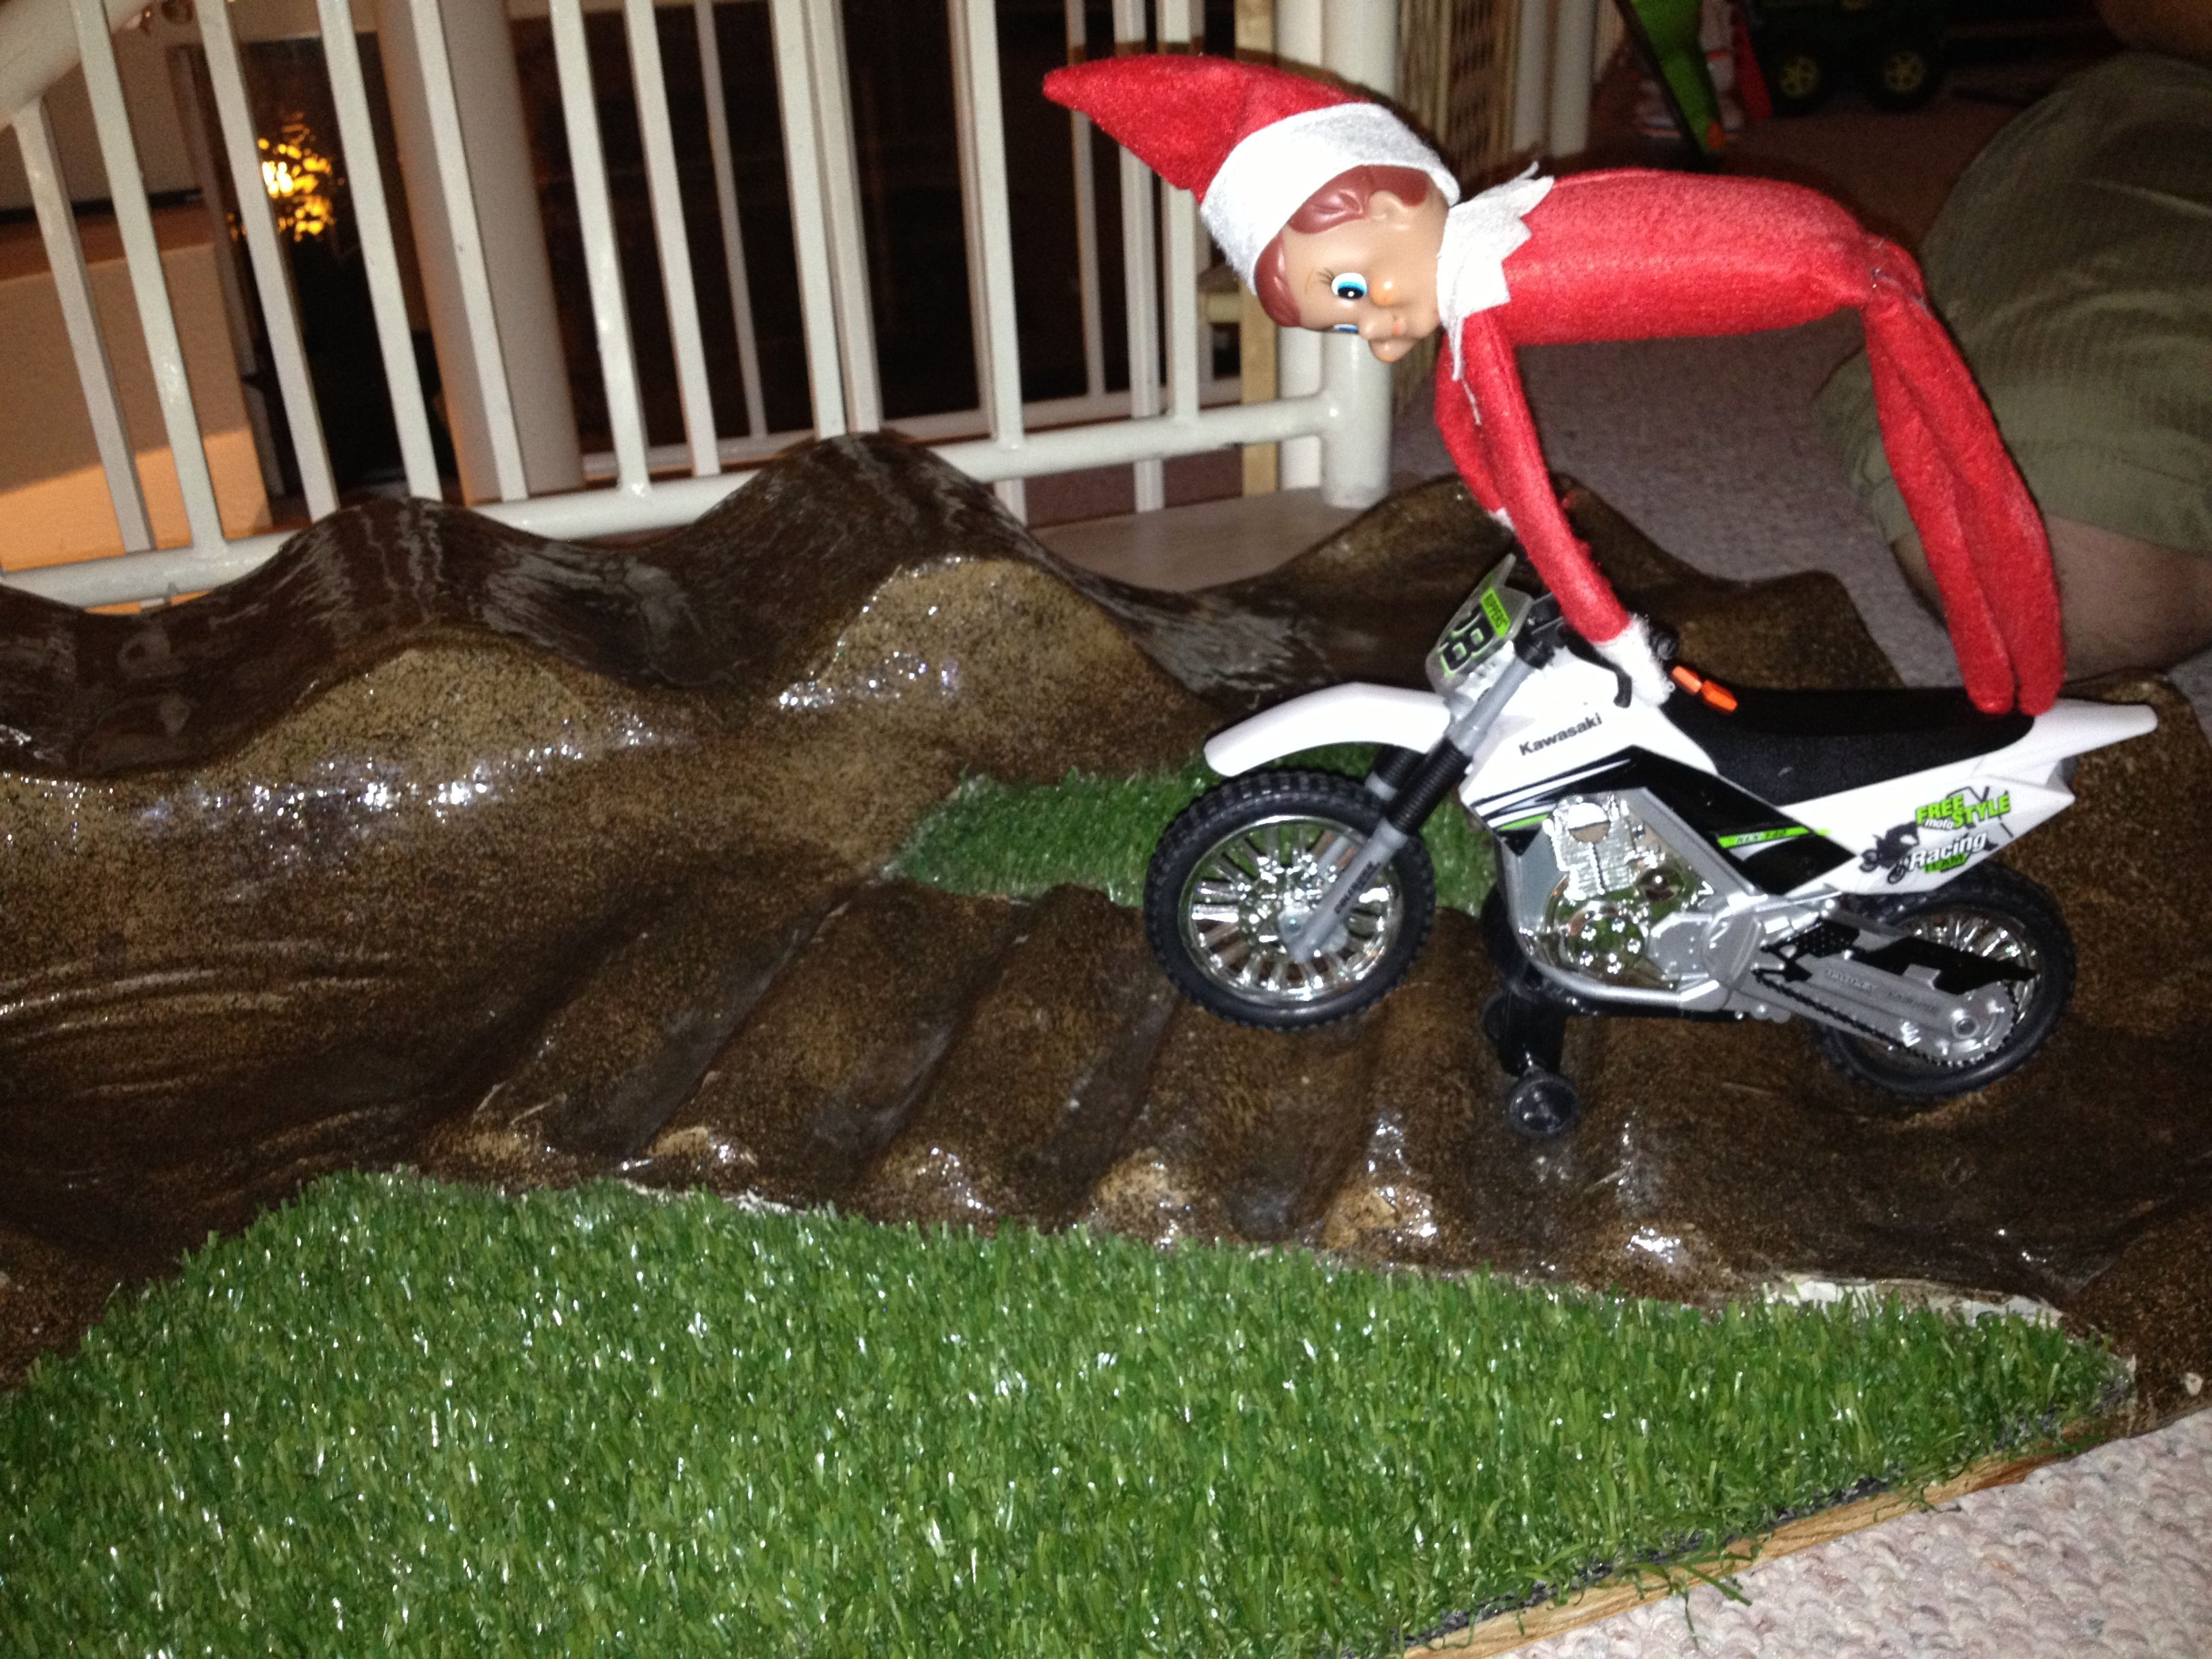 Elf on the shelf doing tricks on dirt bike track